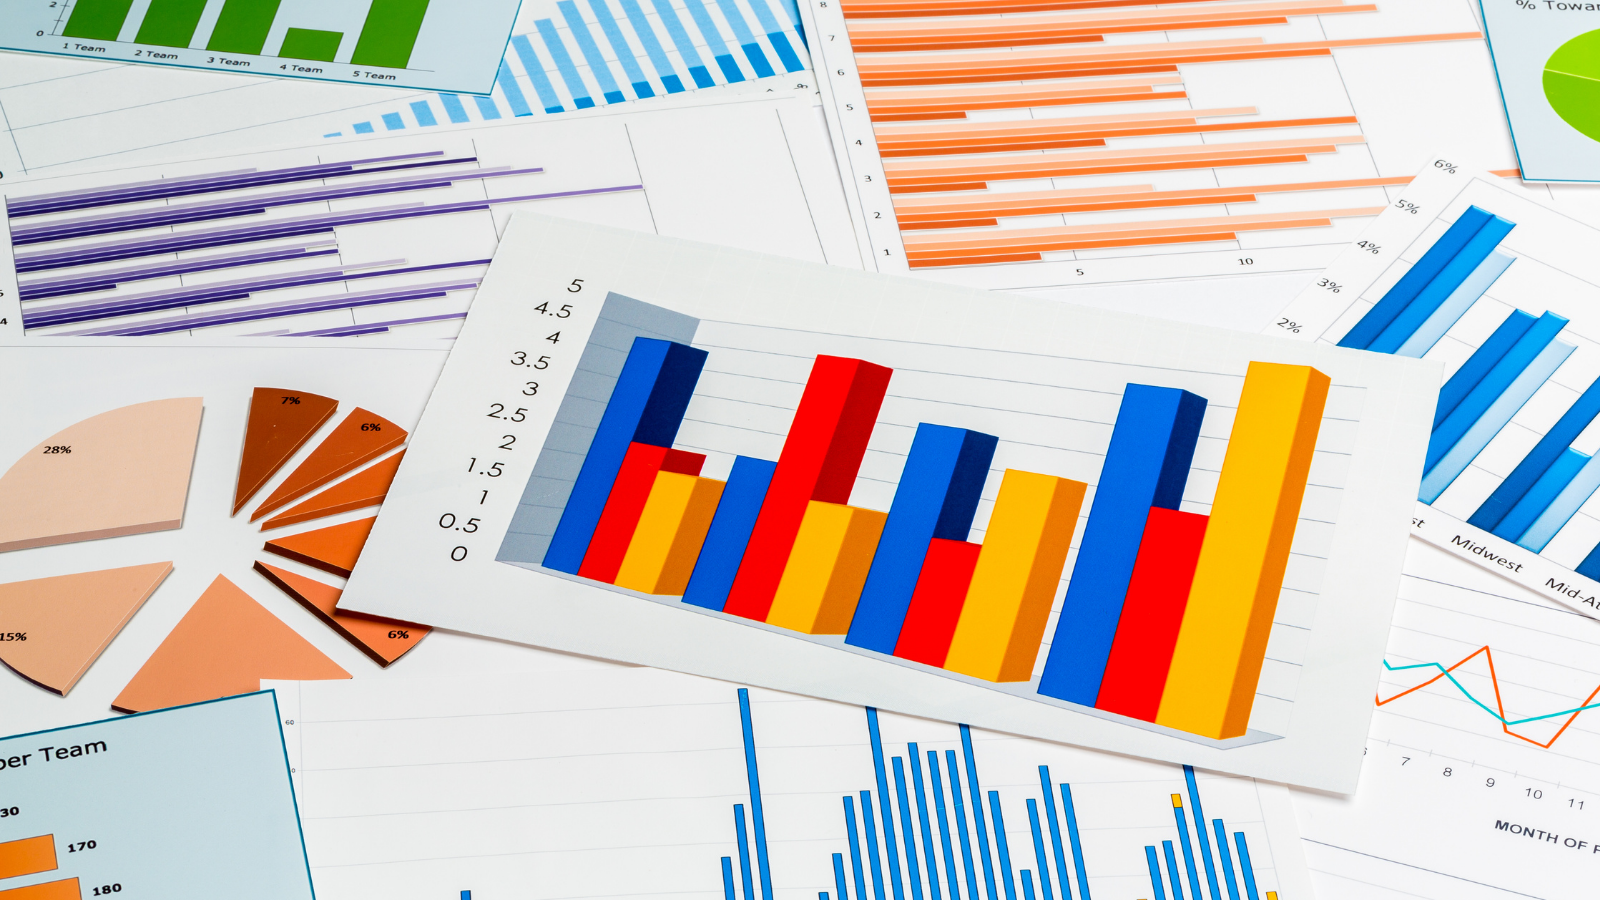 How to Use a Sales Diagnostic to Improve Performance